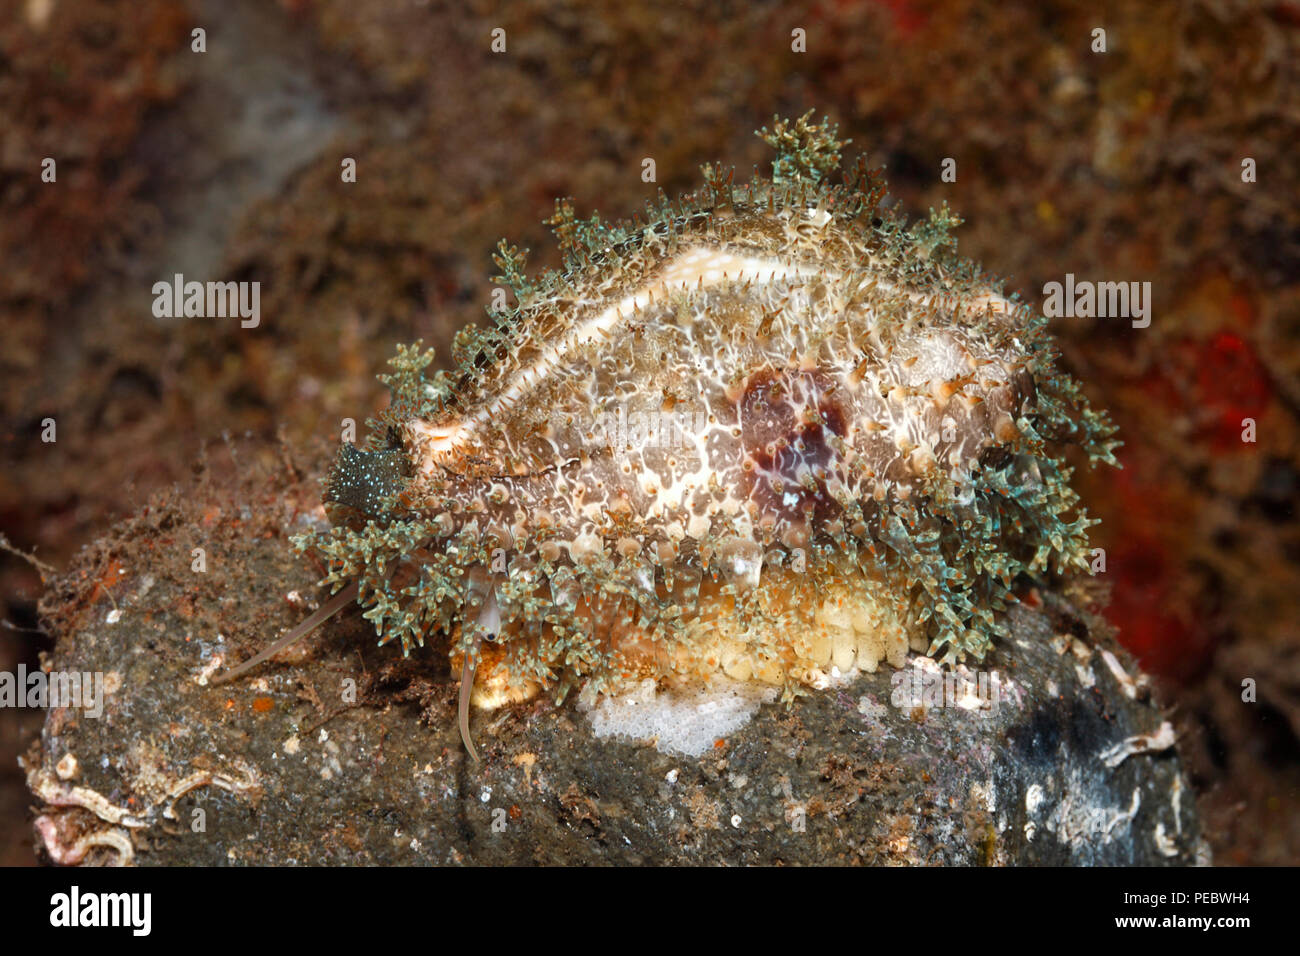 miliaris-cowry-or-miliaris-cowrie-naria-miliaris-sitting-on-eggs-previously-described-as-cypraea-miliaris-tulamben-bali-indonesia-bali-sea-PEBWH4.jpg